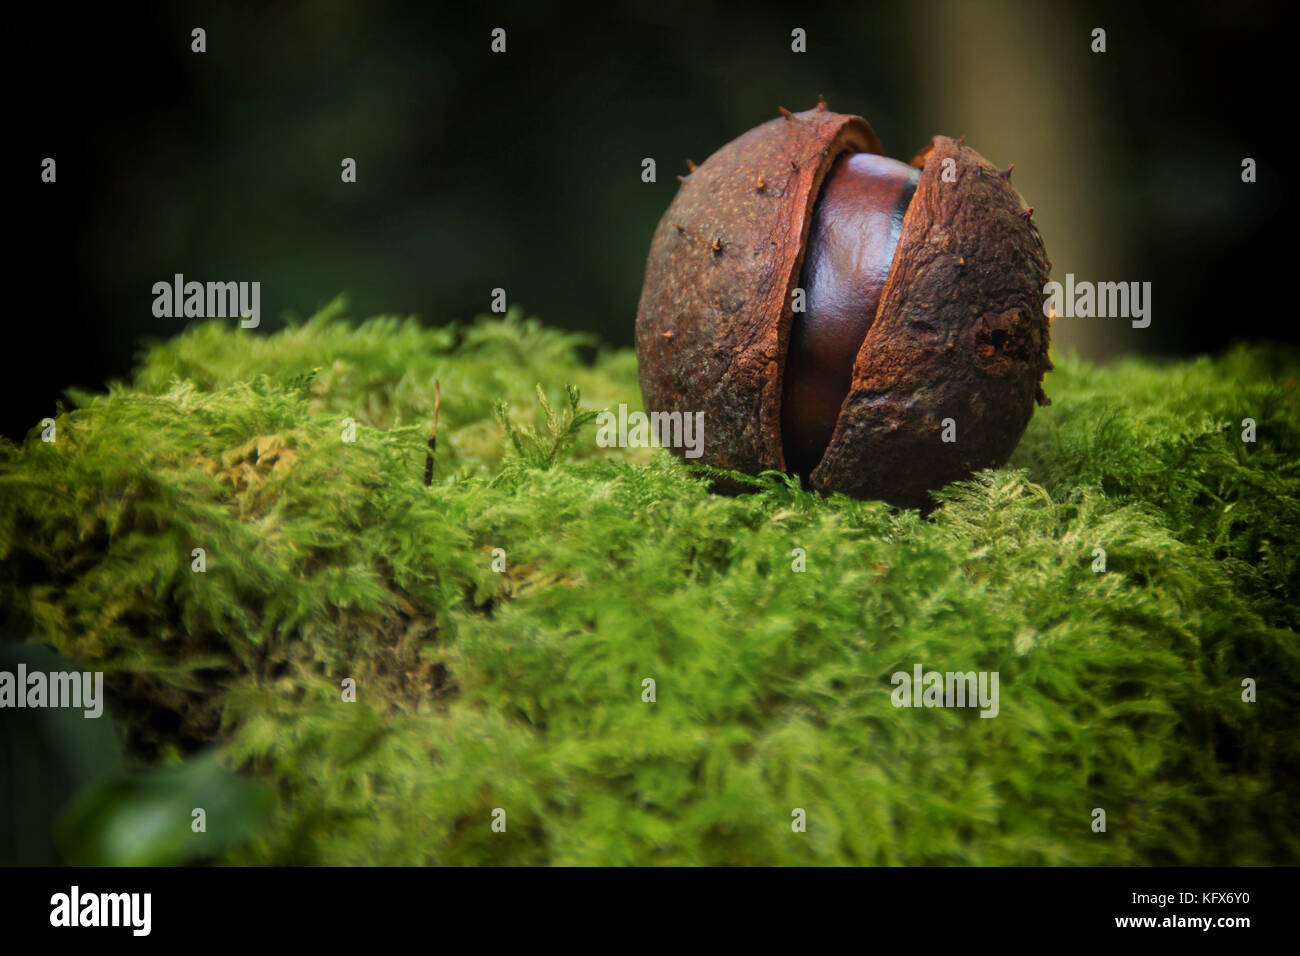 A fallen ripe Chestnut sitting on a mossy bank. - Stock Image